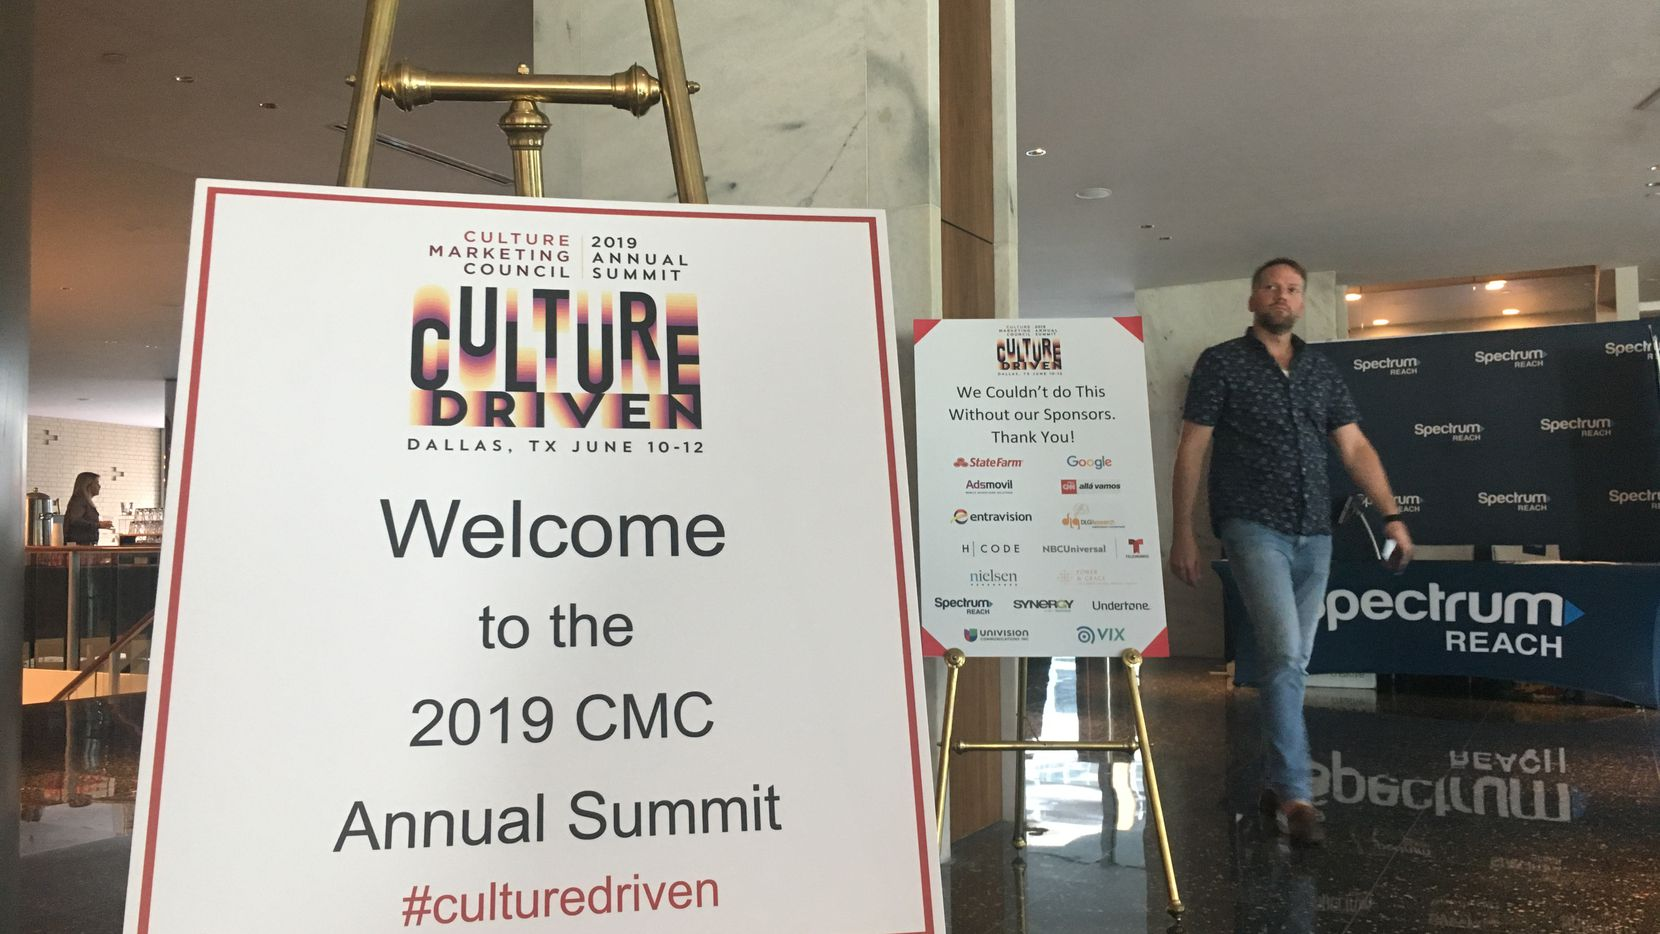 The Culture Marketing Council's 2019 summit kicked off at the Statler Hotel in Dallas on Monday, June 10, 2019.